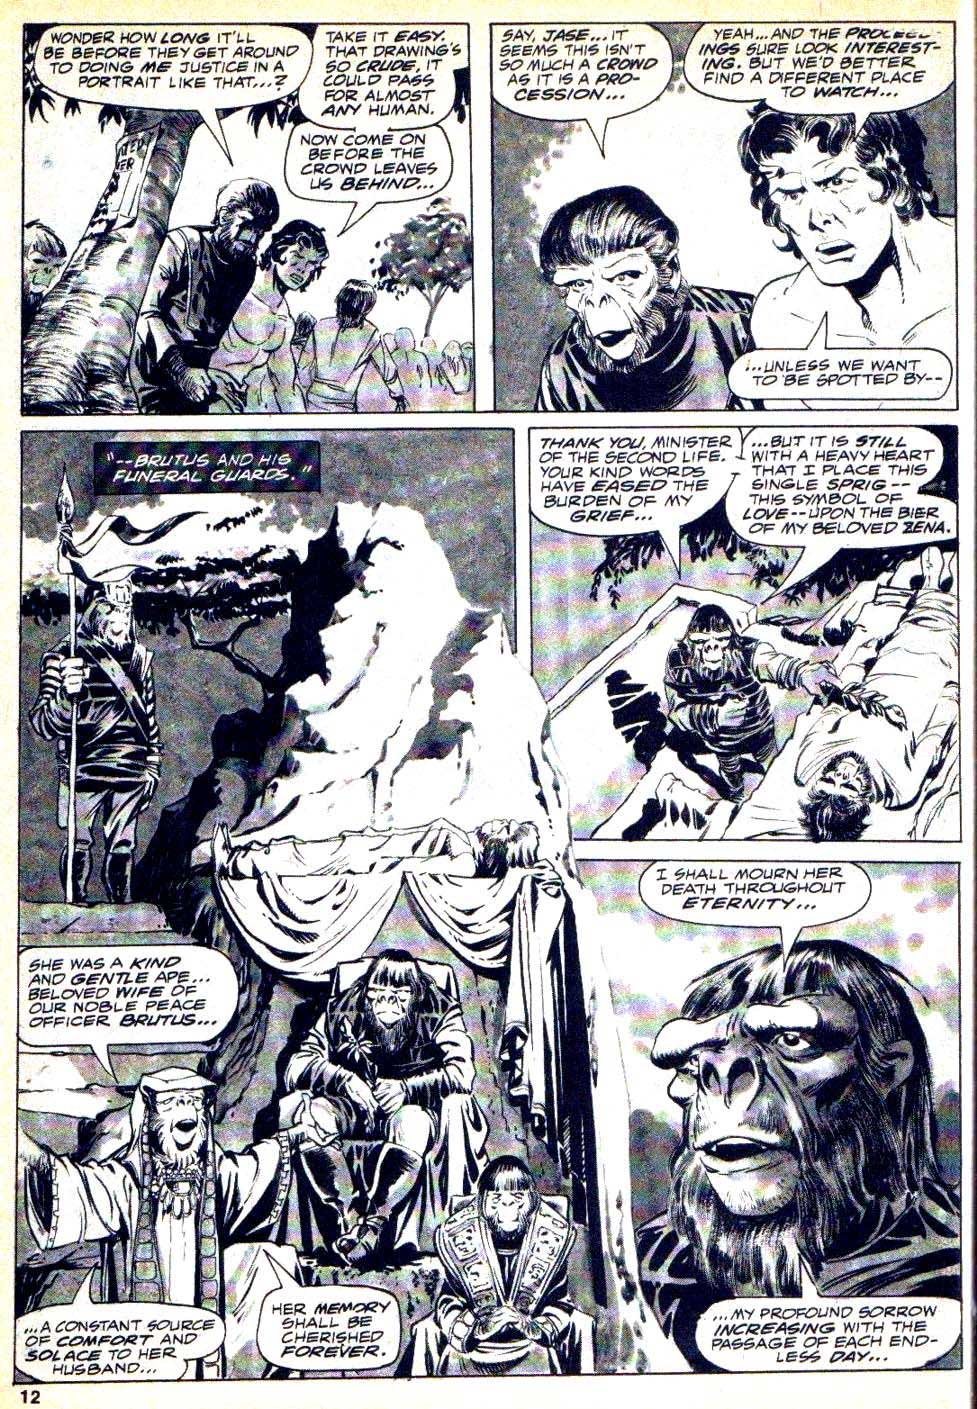 Planet of the Apes v1 #2 curtis magazine page art by Mike Ploog